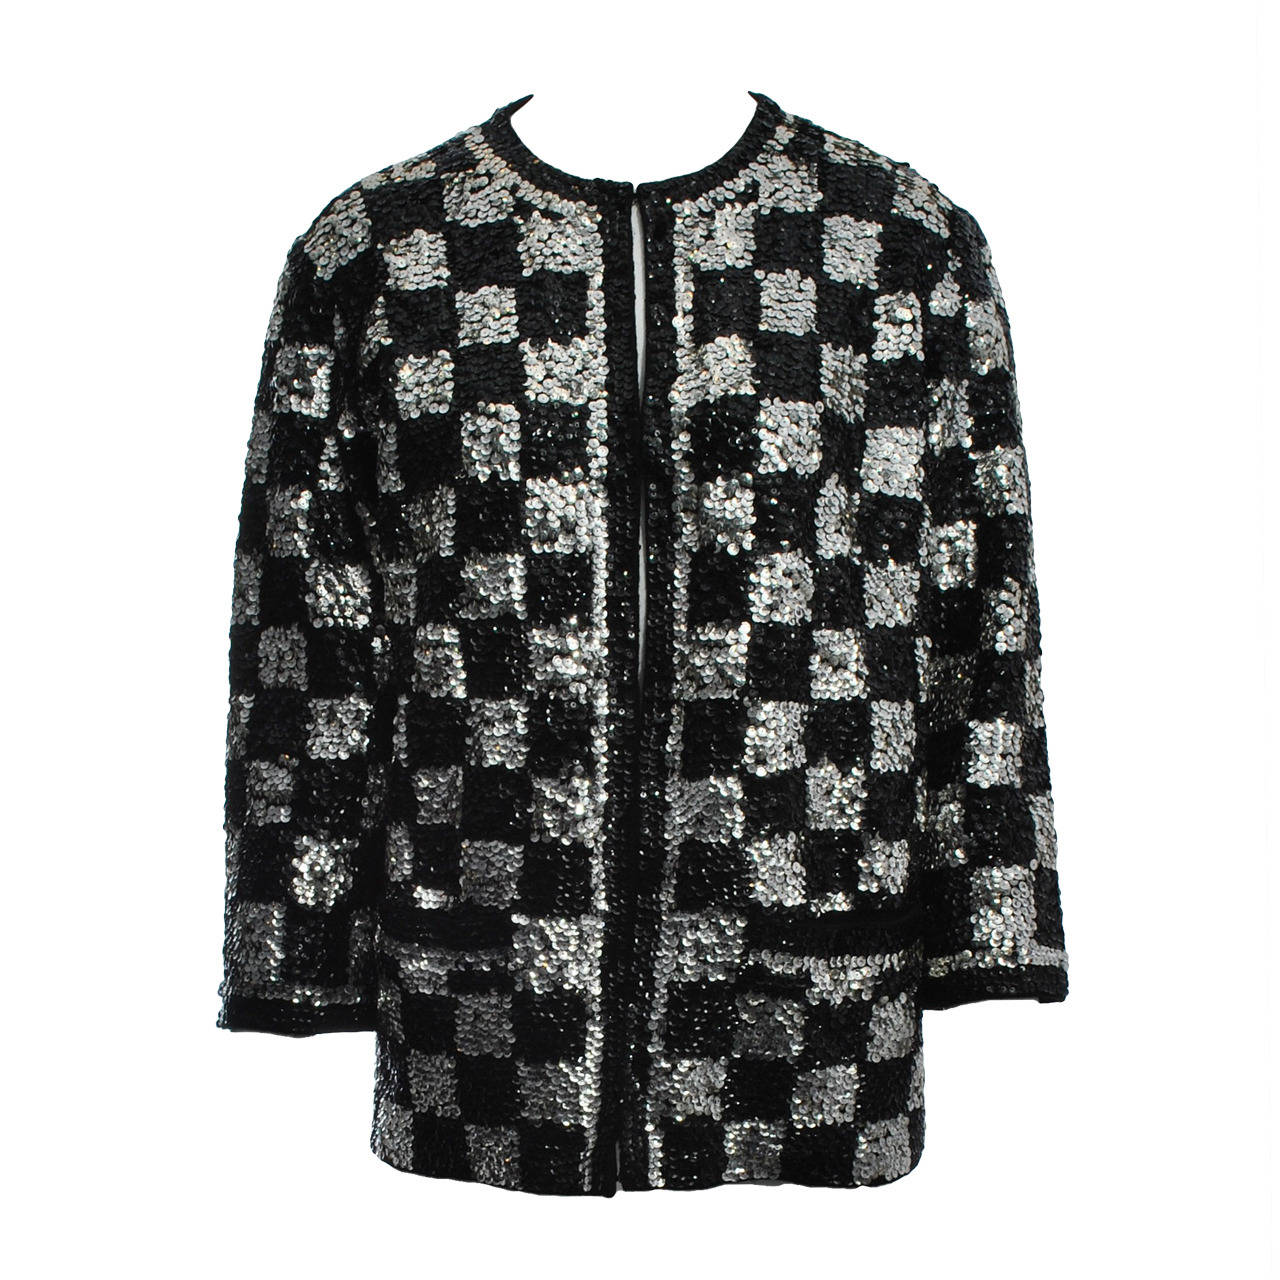 Black/Silver Sequin Cardigan 1